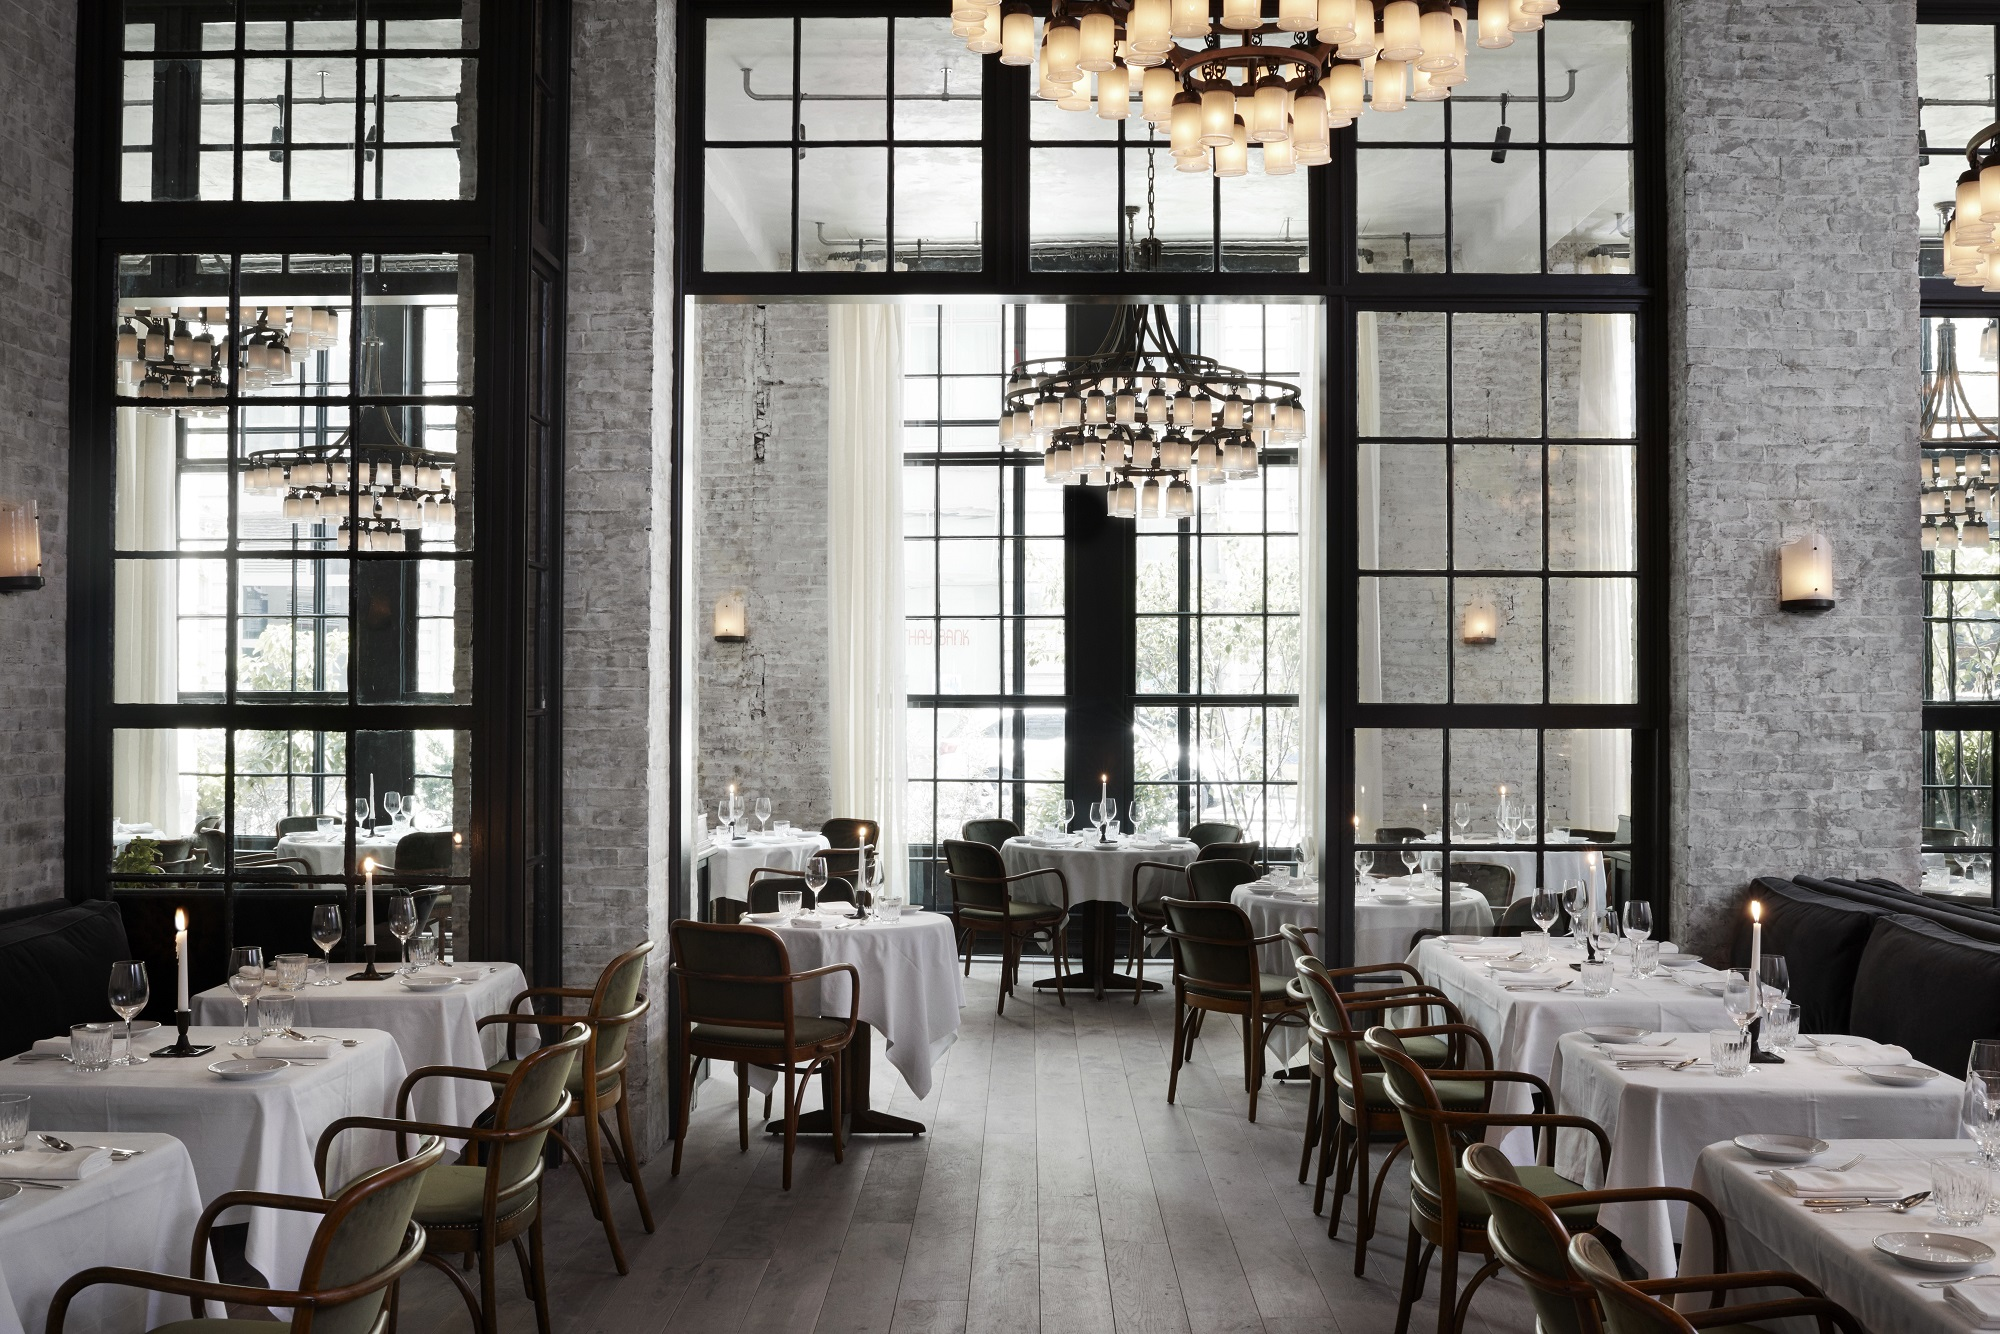 Take a look at Roman & Williams – Designed Le Coucou Restaurant Peter Marino Luxury interiors by Peter Marino Roman Williams 1 Peter Marino Luxury interiors by Peter Marino Roman Williams 1